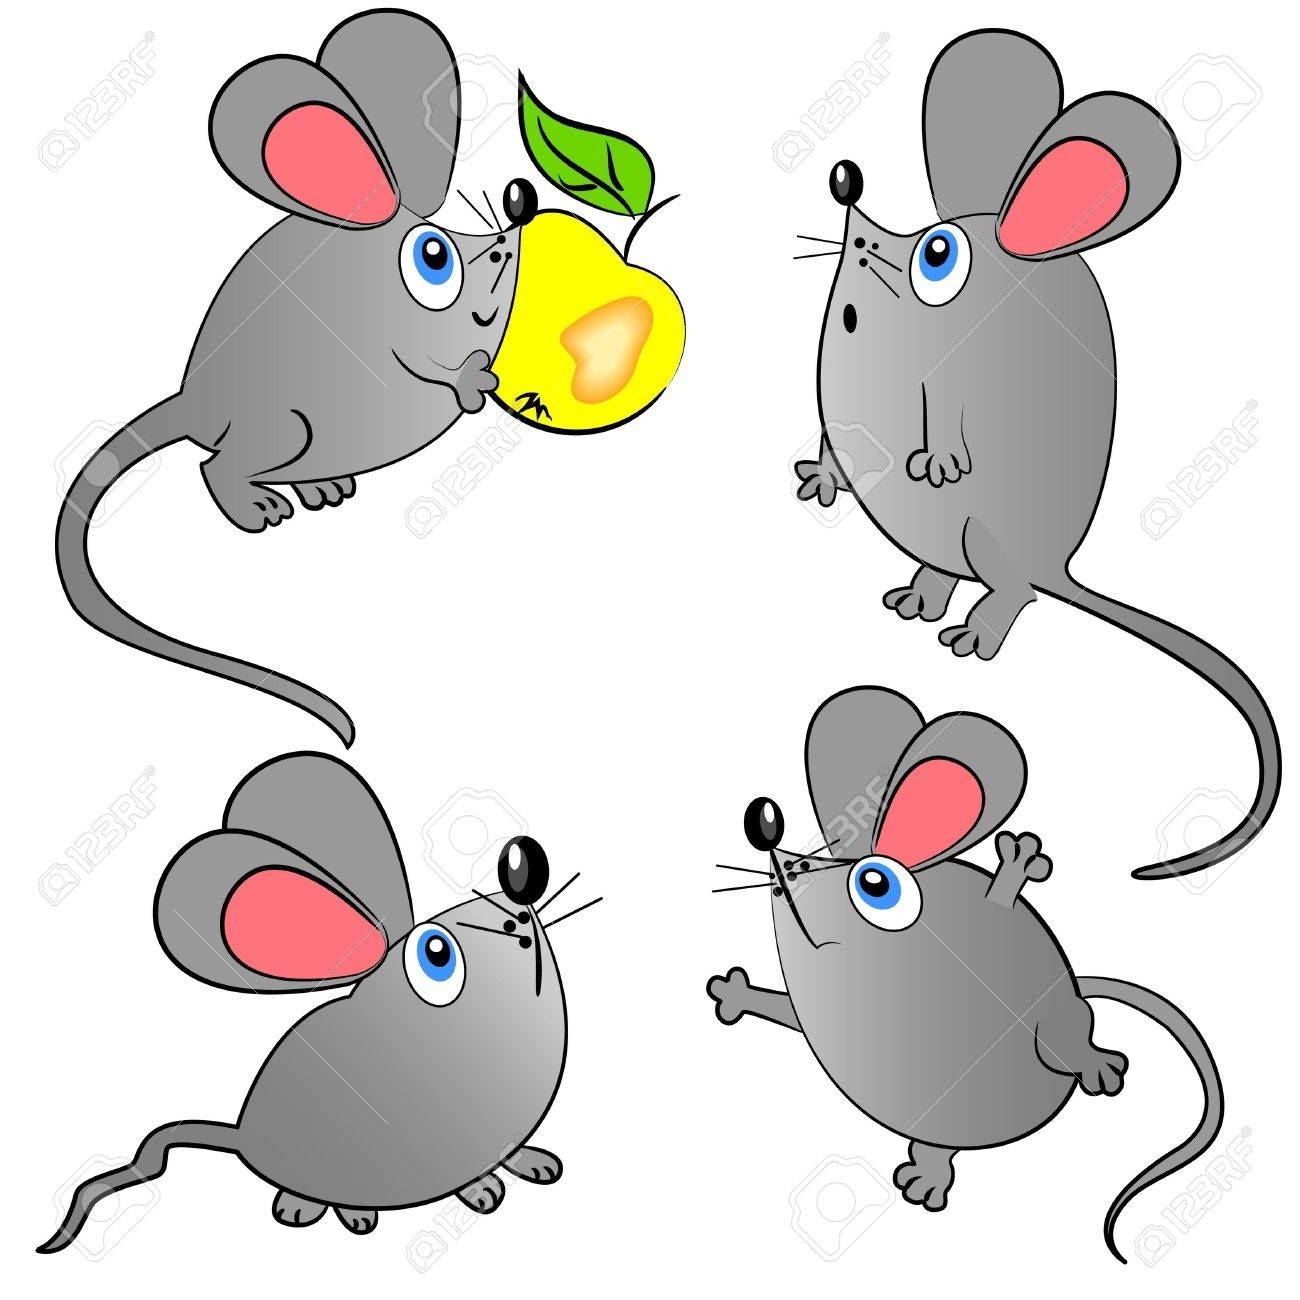 mouse vector set. isolated animals illustration Stock Vector - 11411174